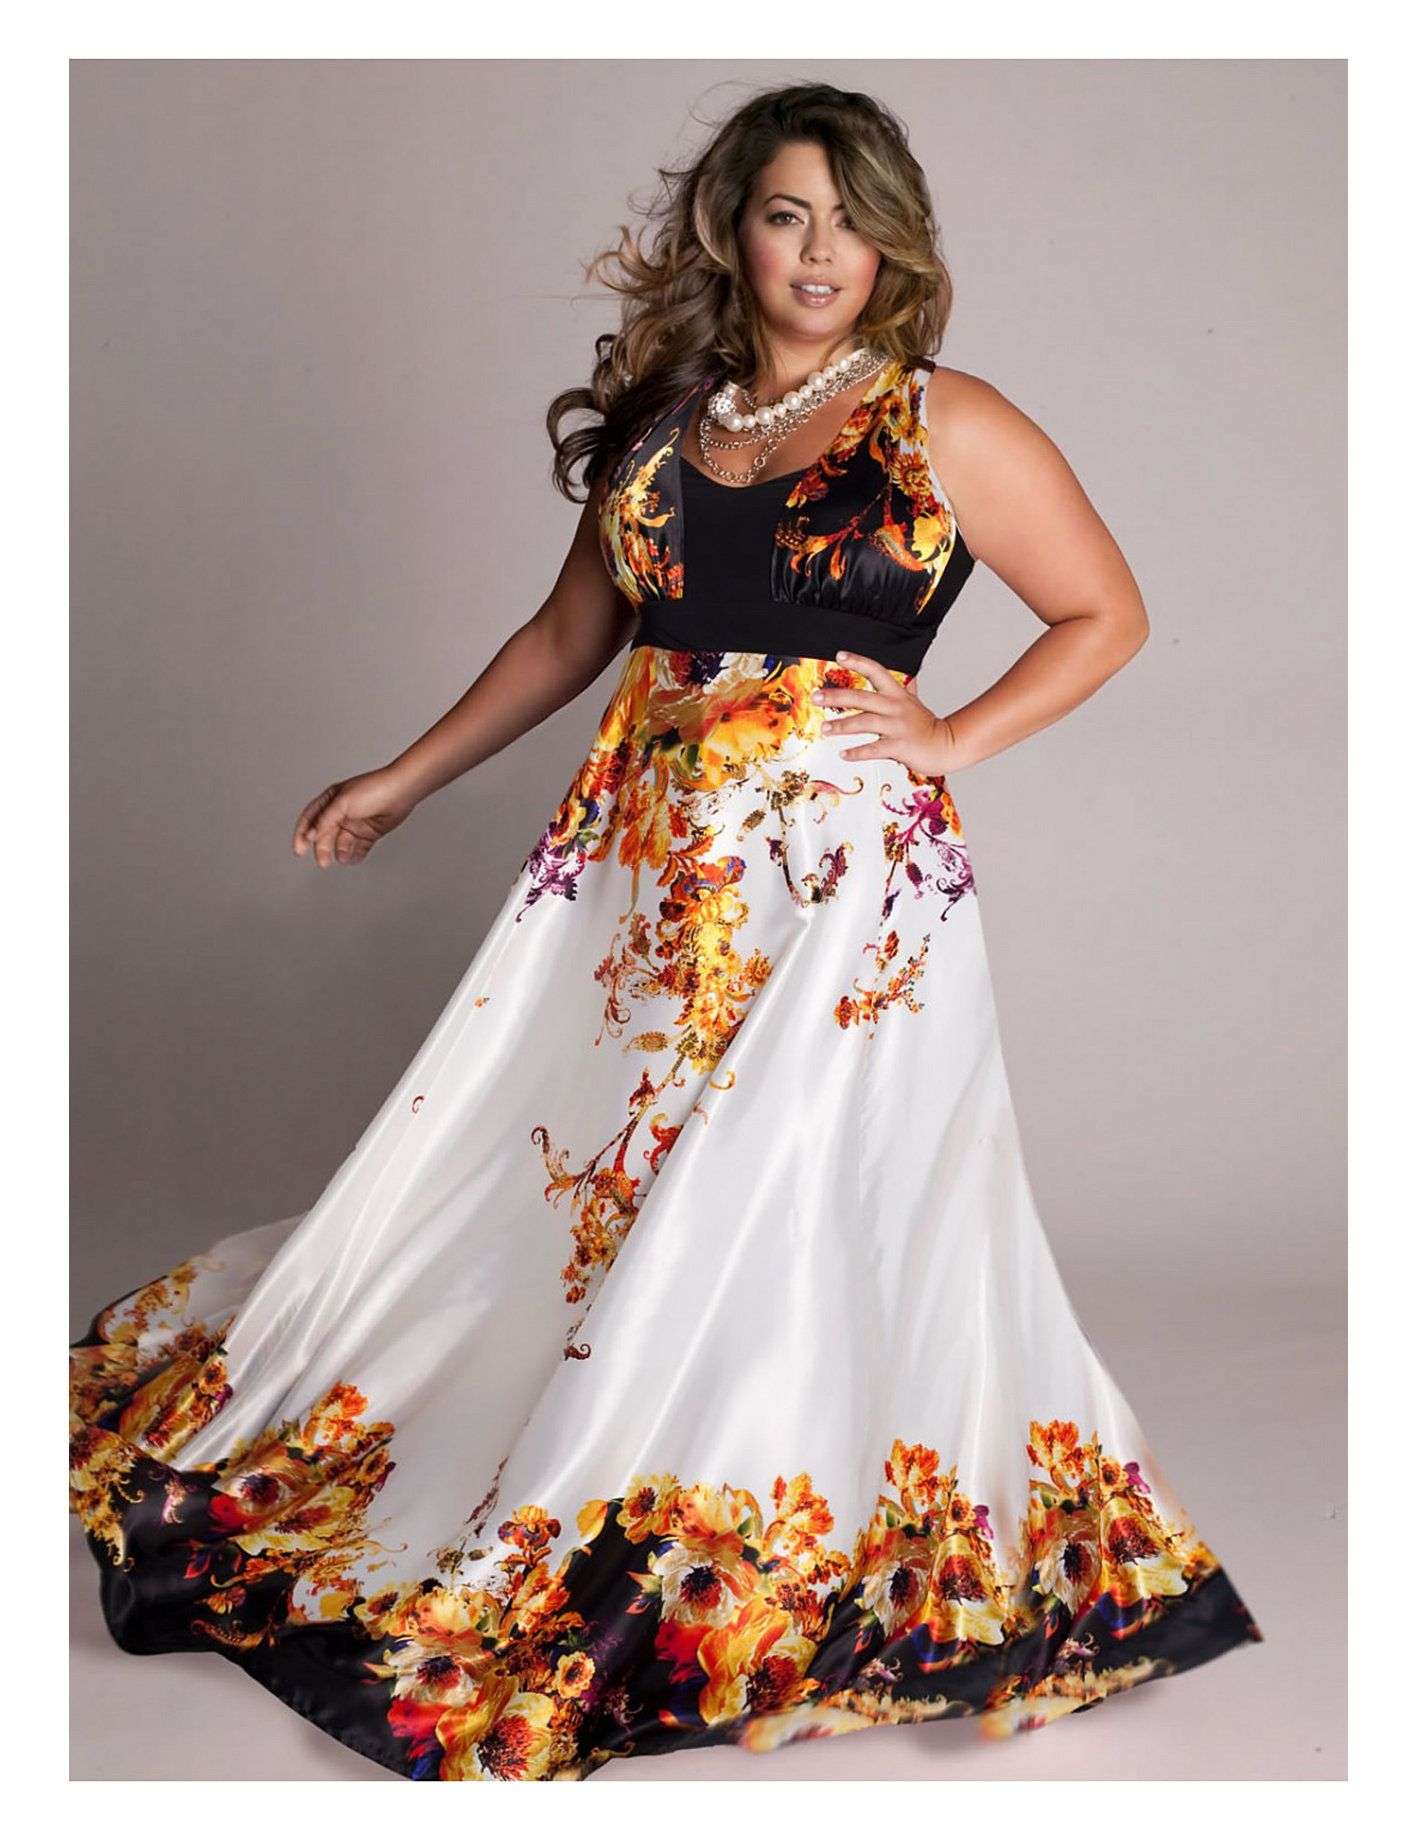 Plus Size Bridesmaid Dresses & Dresses for Wedding Guests | Sonsi ...